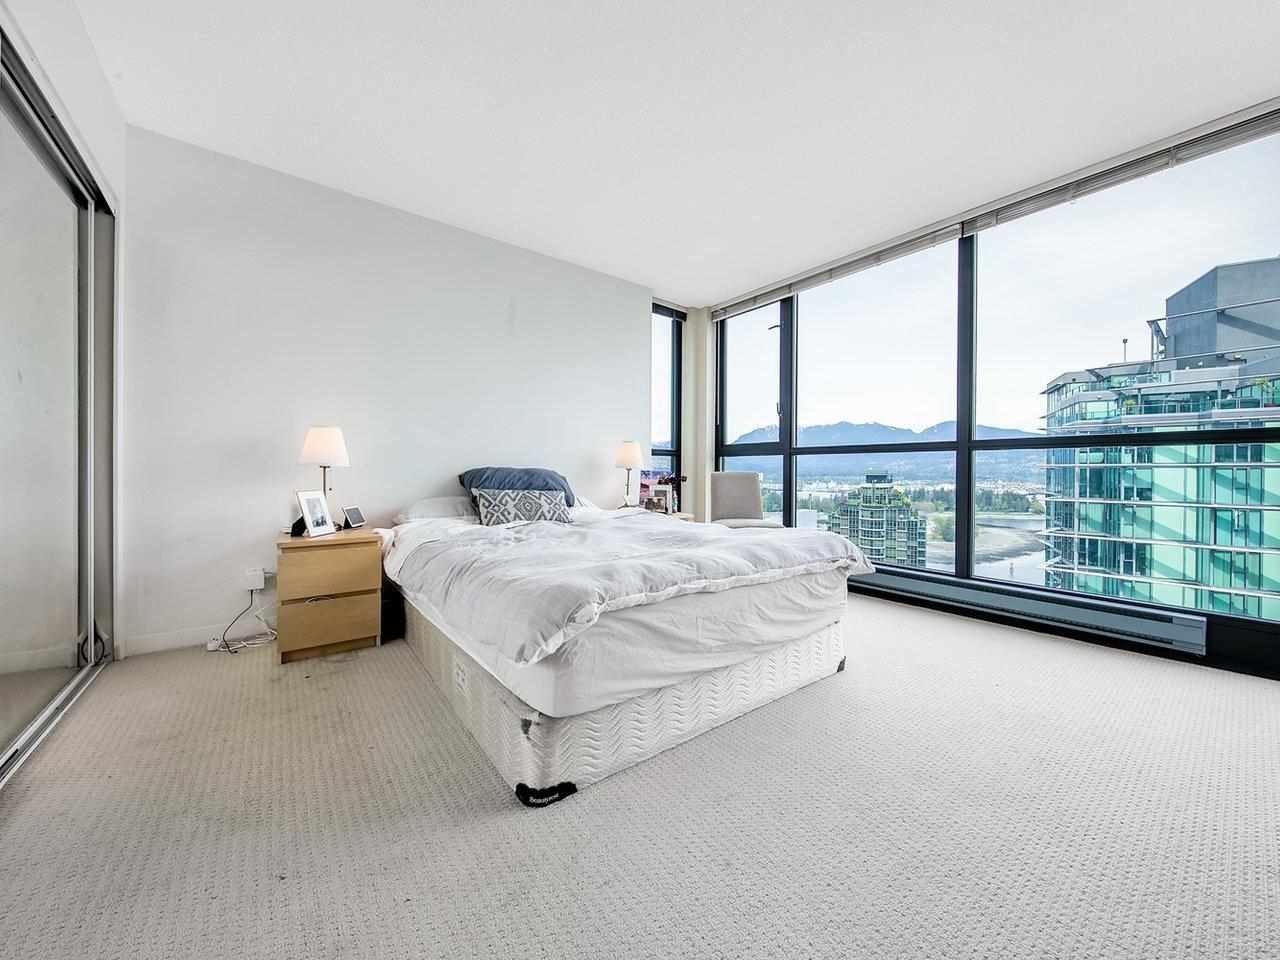 2701 1331 ALBERNI STREET - West End VW Apartment/Condo for sale, 3 Bedrooms (R2576100) - #12